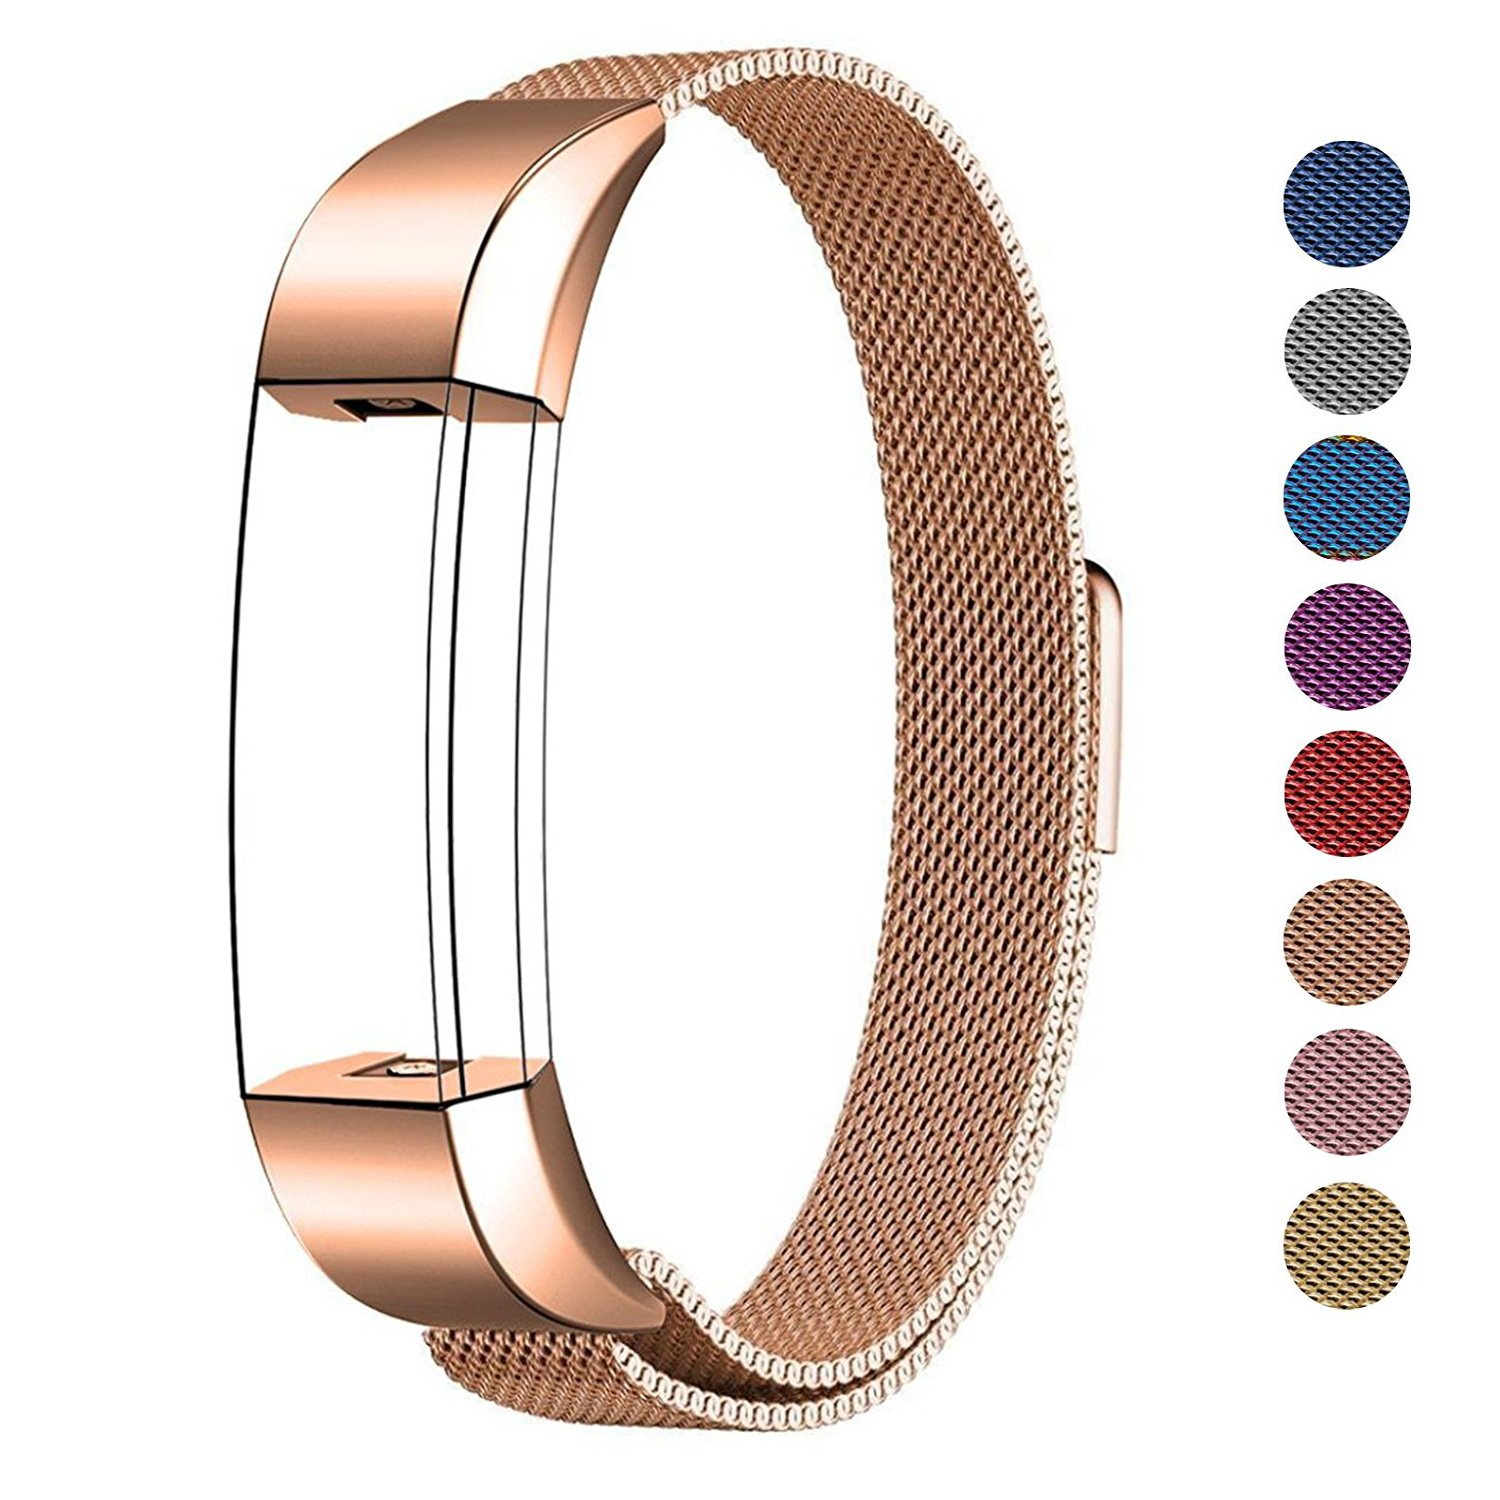 "Swees For Fitbit Alta HR and Alta Band Metal Small & Large (5.5"" - 9.9""), Milanese Stainless Steel Replacement Band for Fitbit Alta HR and Alta Women Men, Silver, Black, Rose Gold, Colorful, Champagne"